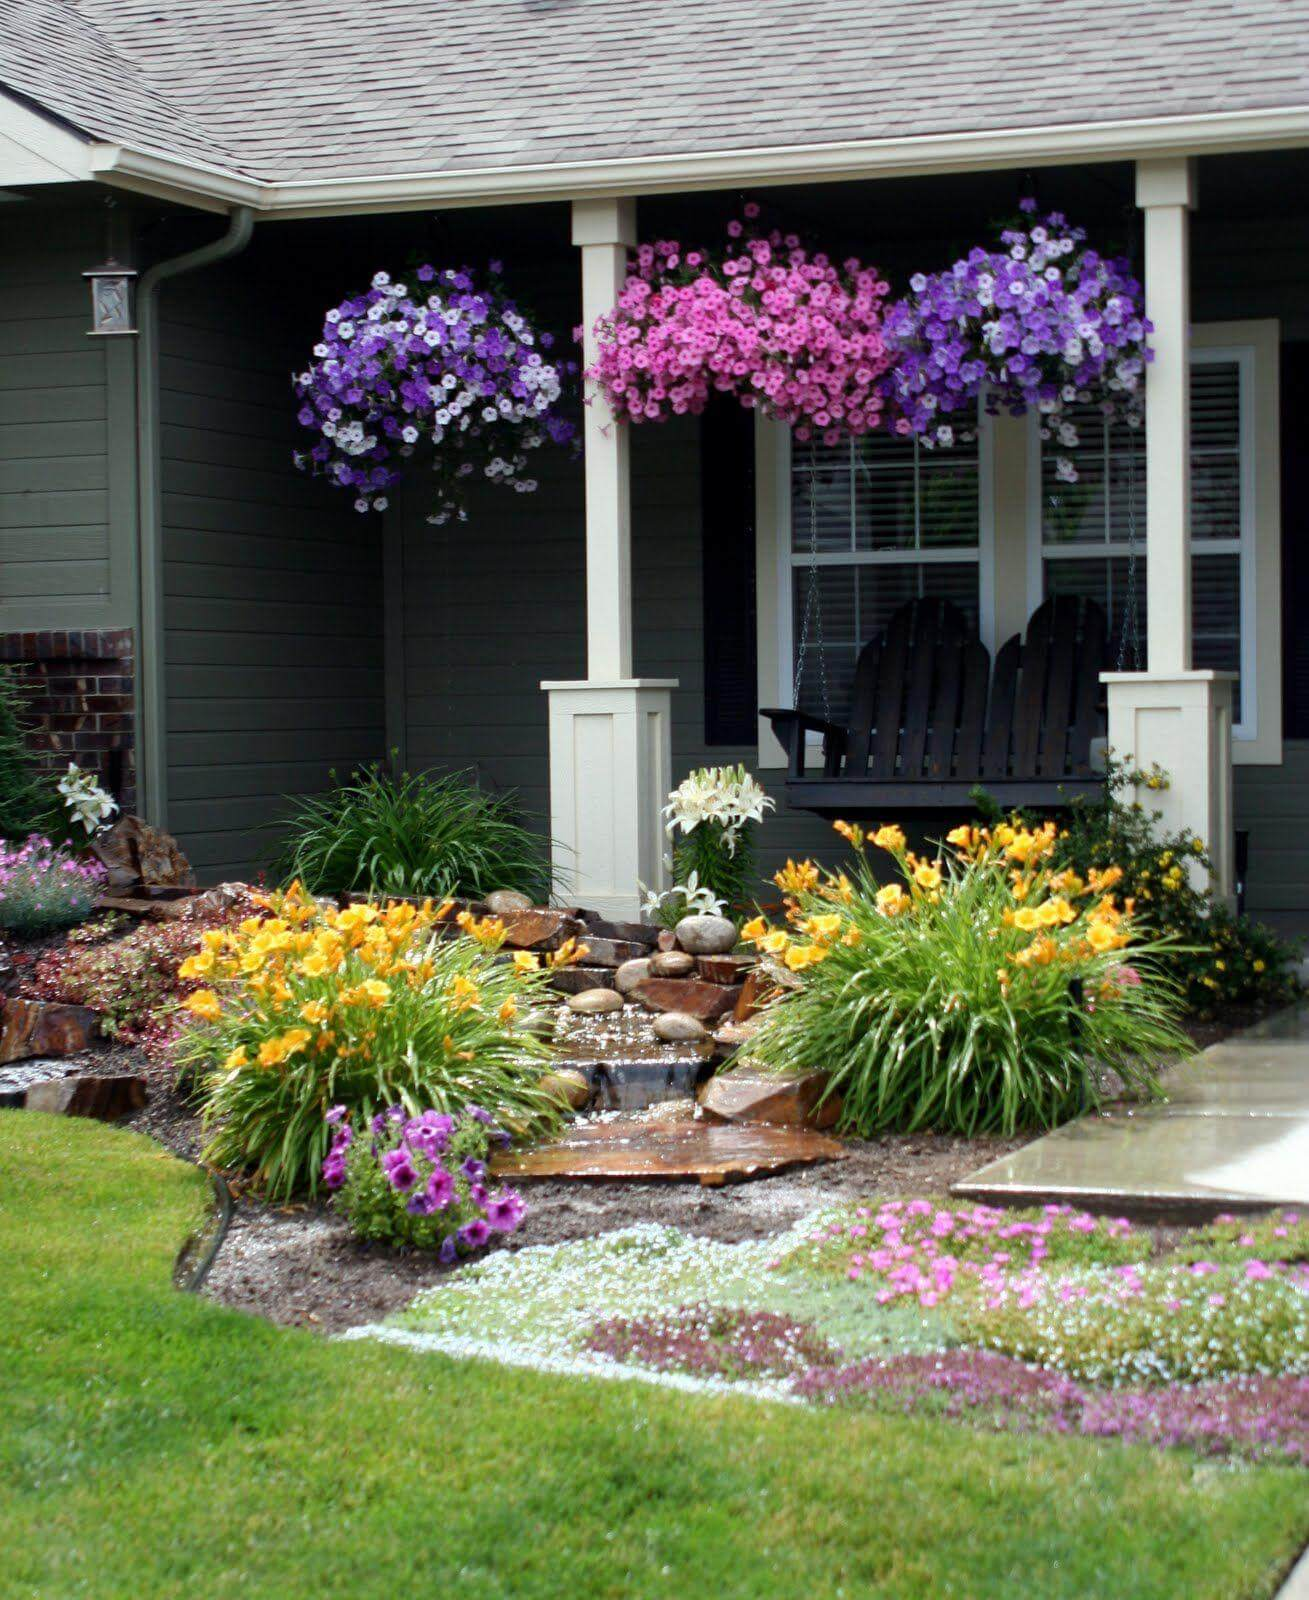 Landscaping Ideas: 50 Best Front Yard Landscaping Ideas And Garden Designs